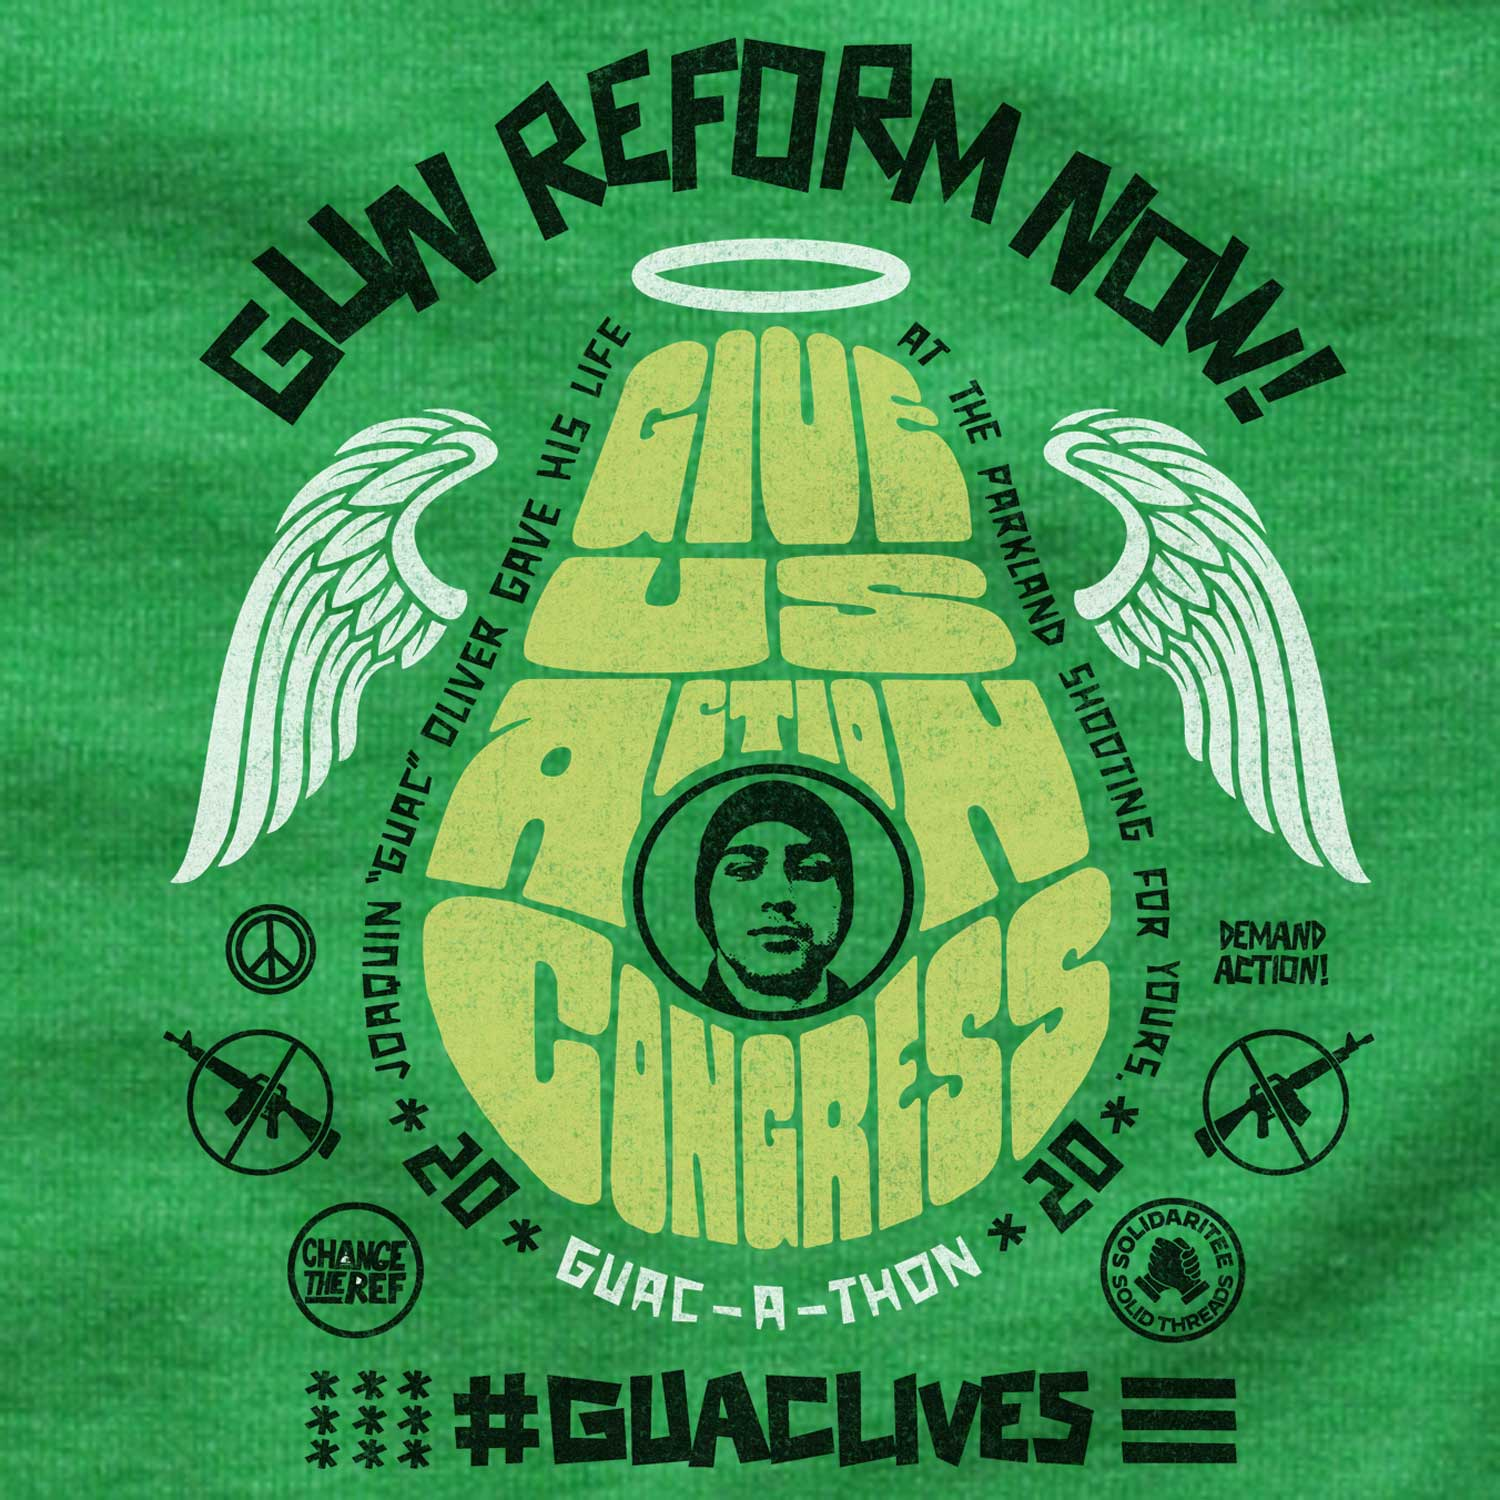 Toddler's Guac live give us action congress vintage inspired gun reform tee shirt with cool retro protest graphic | #GUAClives in SolidariTEE with Change The Ref